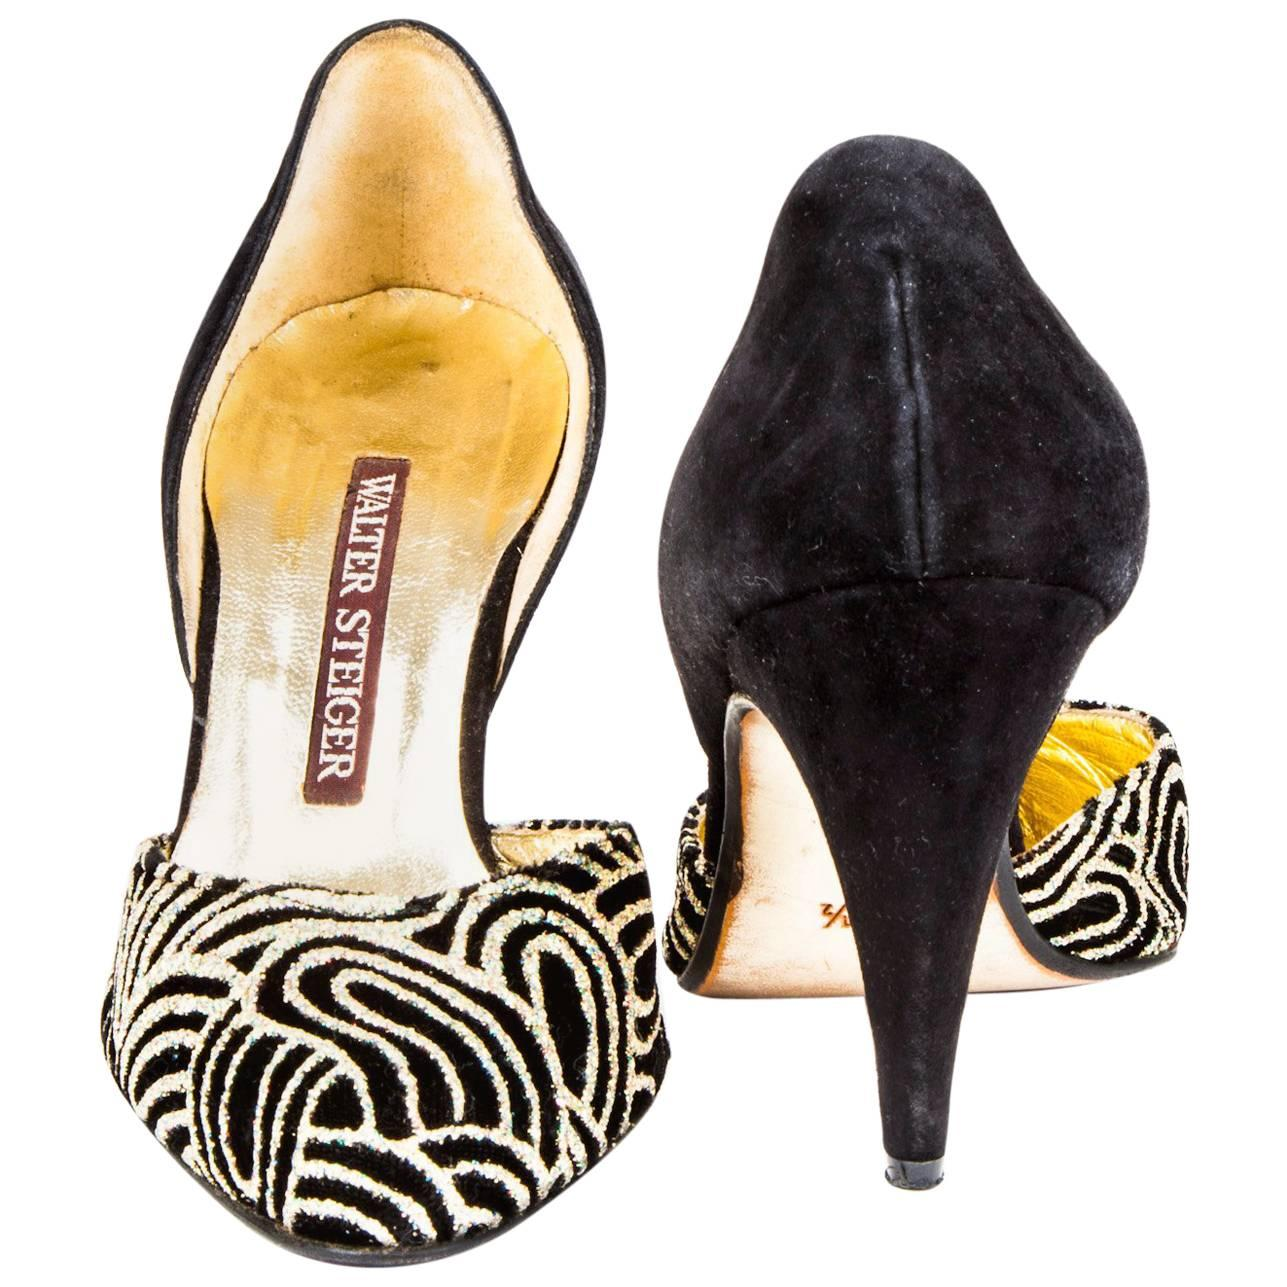 WALTER STEIGER Evening Pumps in Black Suede with Embroideries Size 37.5EU